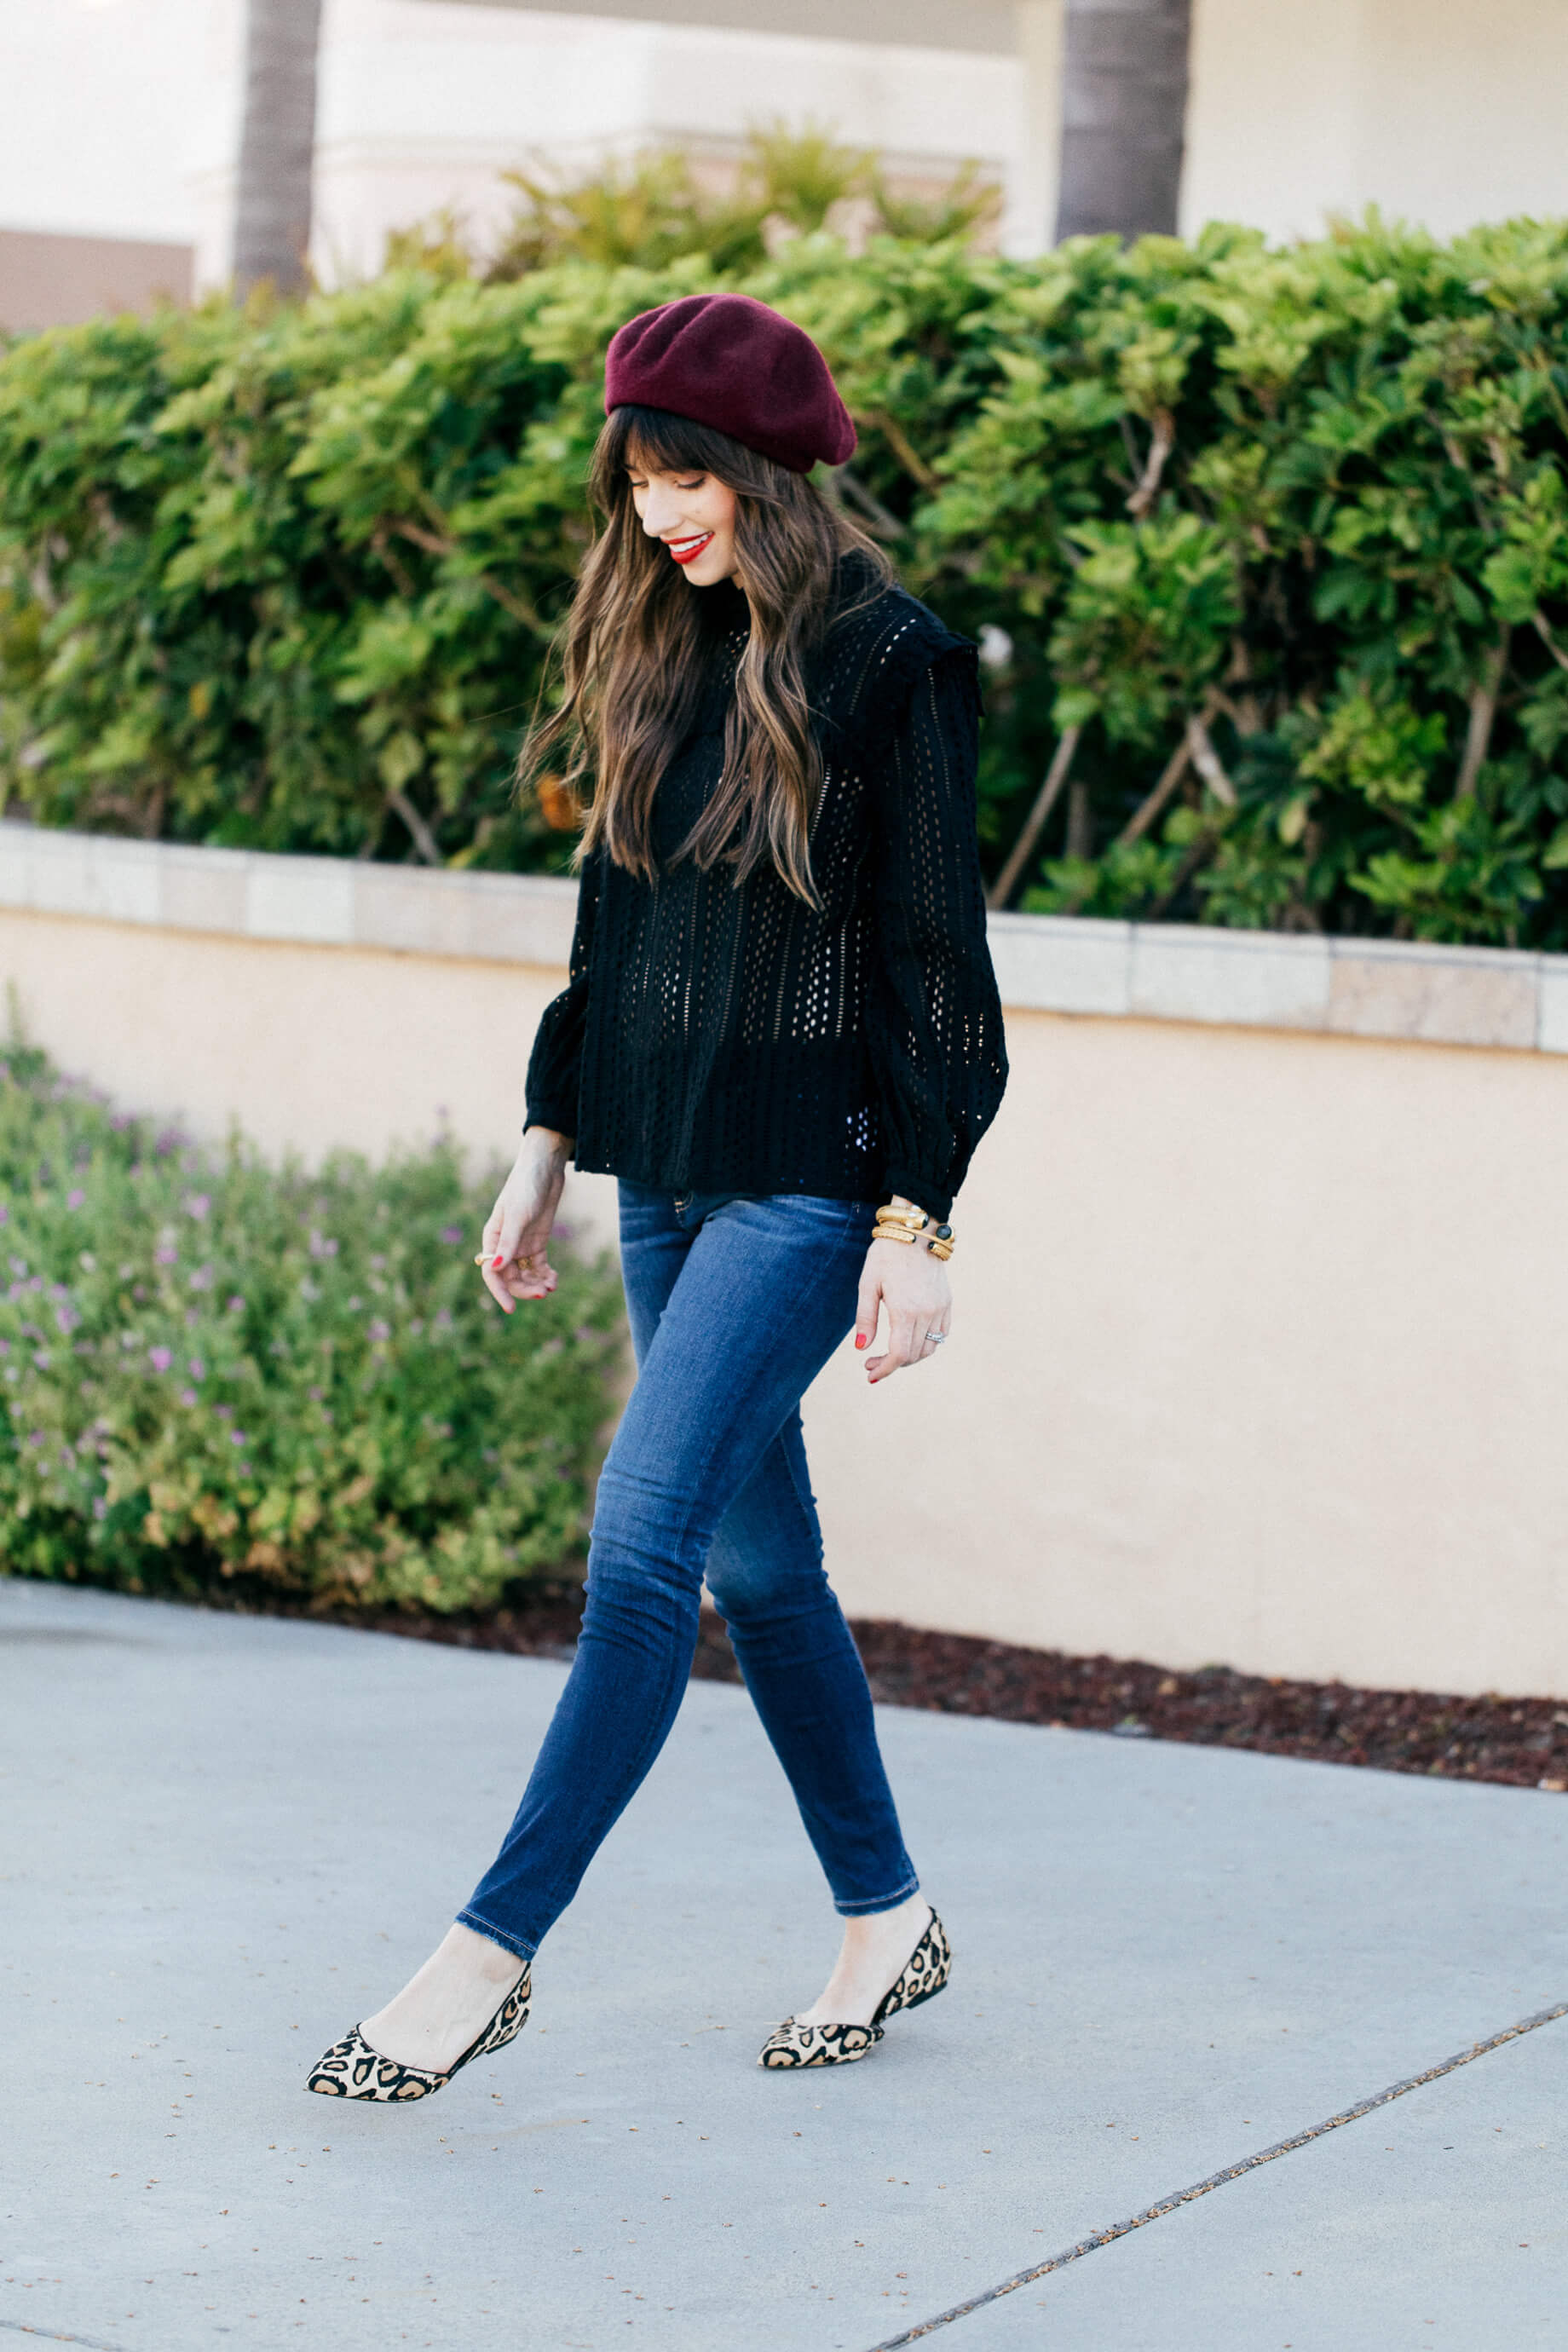 Romantic style outfit inspiration for fall. | M Loves M @marmar